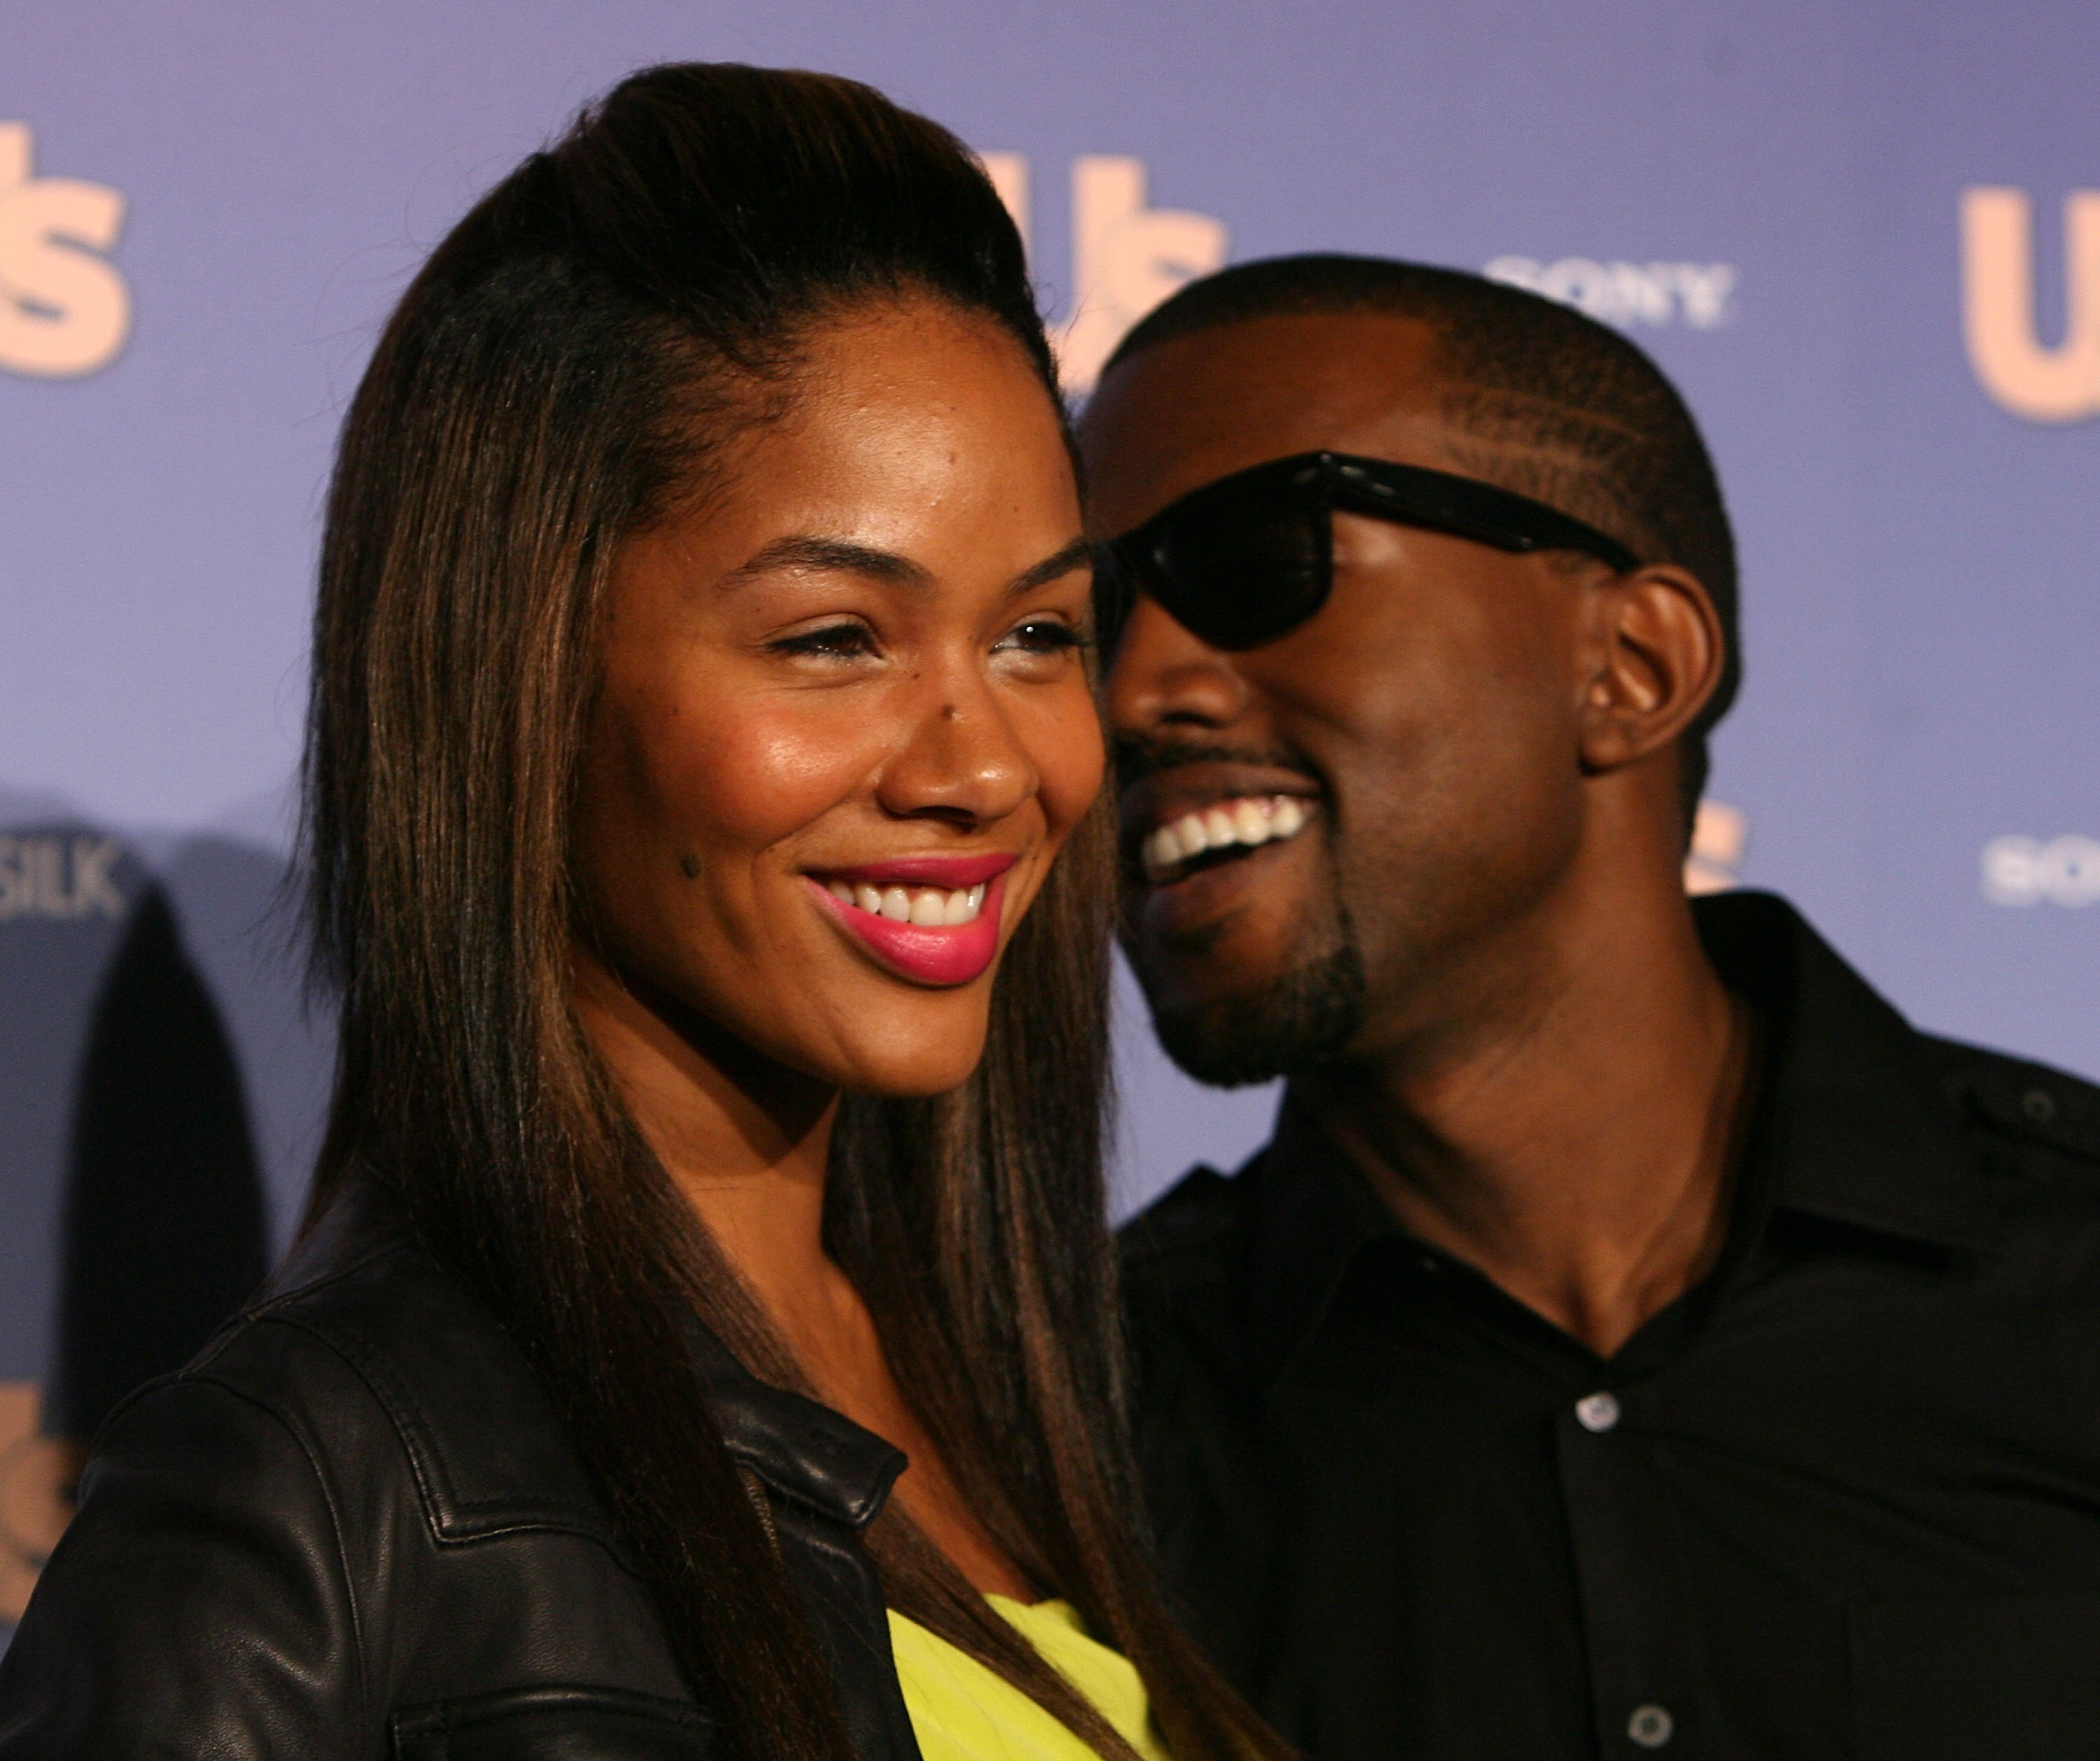 Kanye west dating brooke